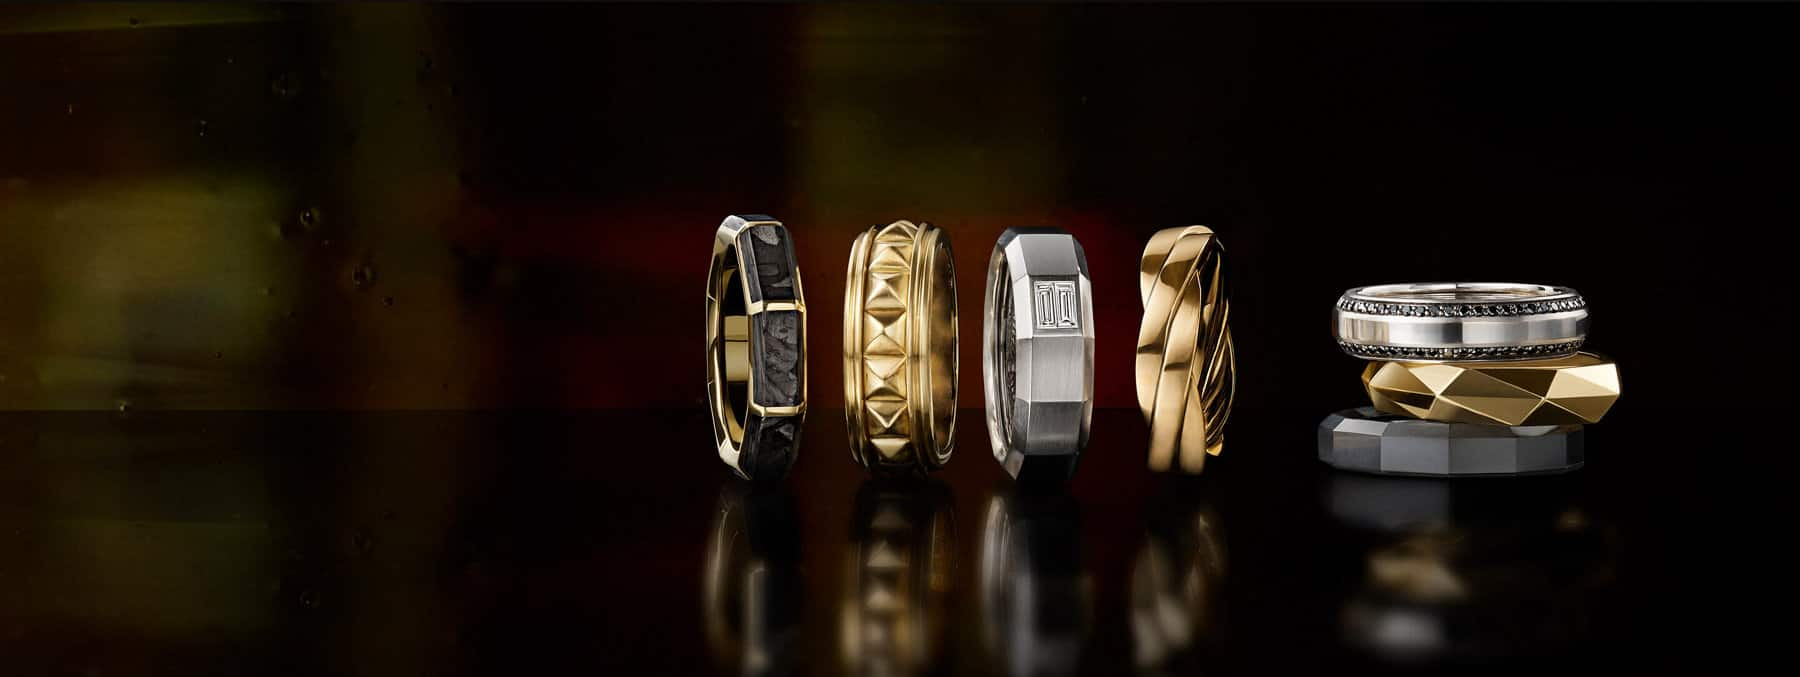 A color photograph shows a horizontal row of four David Yurman men's band rings next to a vertical stack of three David Yurman men's band rings in front of a colorful stained glass panel illuminated by light. The rings are crafted from black titanium, 18K yellow gold with or without forged carbon, 18K white gold with a baguette-cut white diamond or pavé black diamonds.